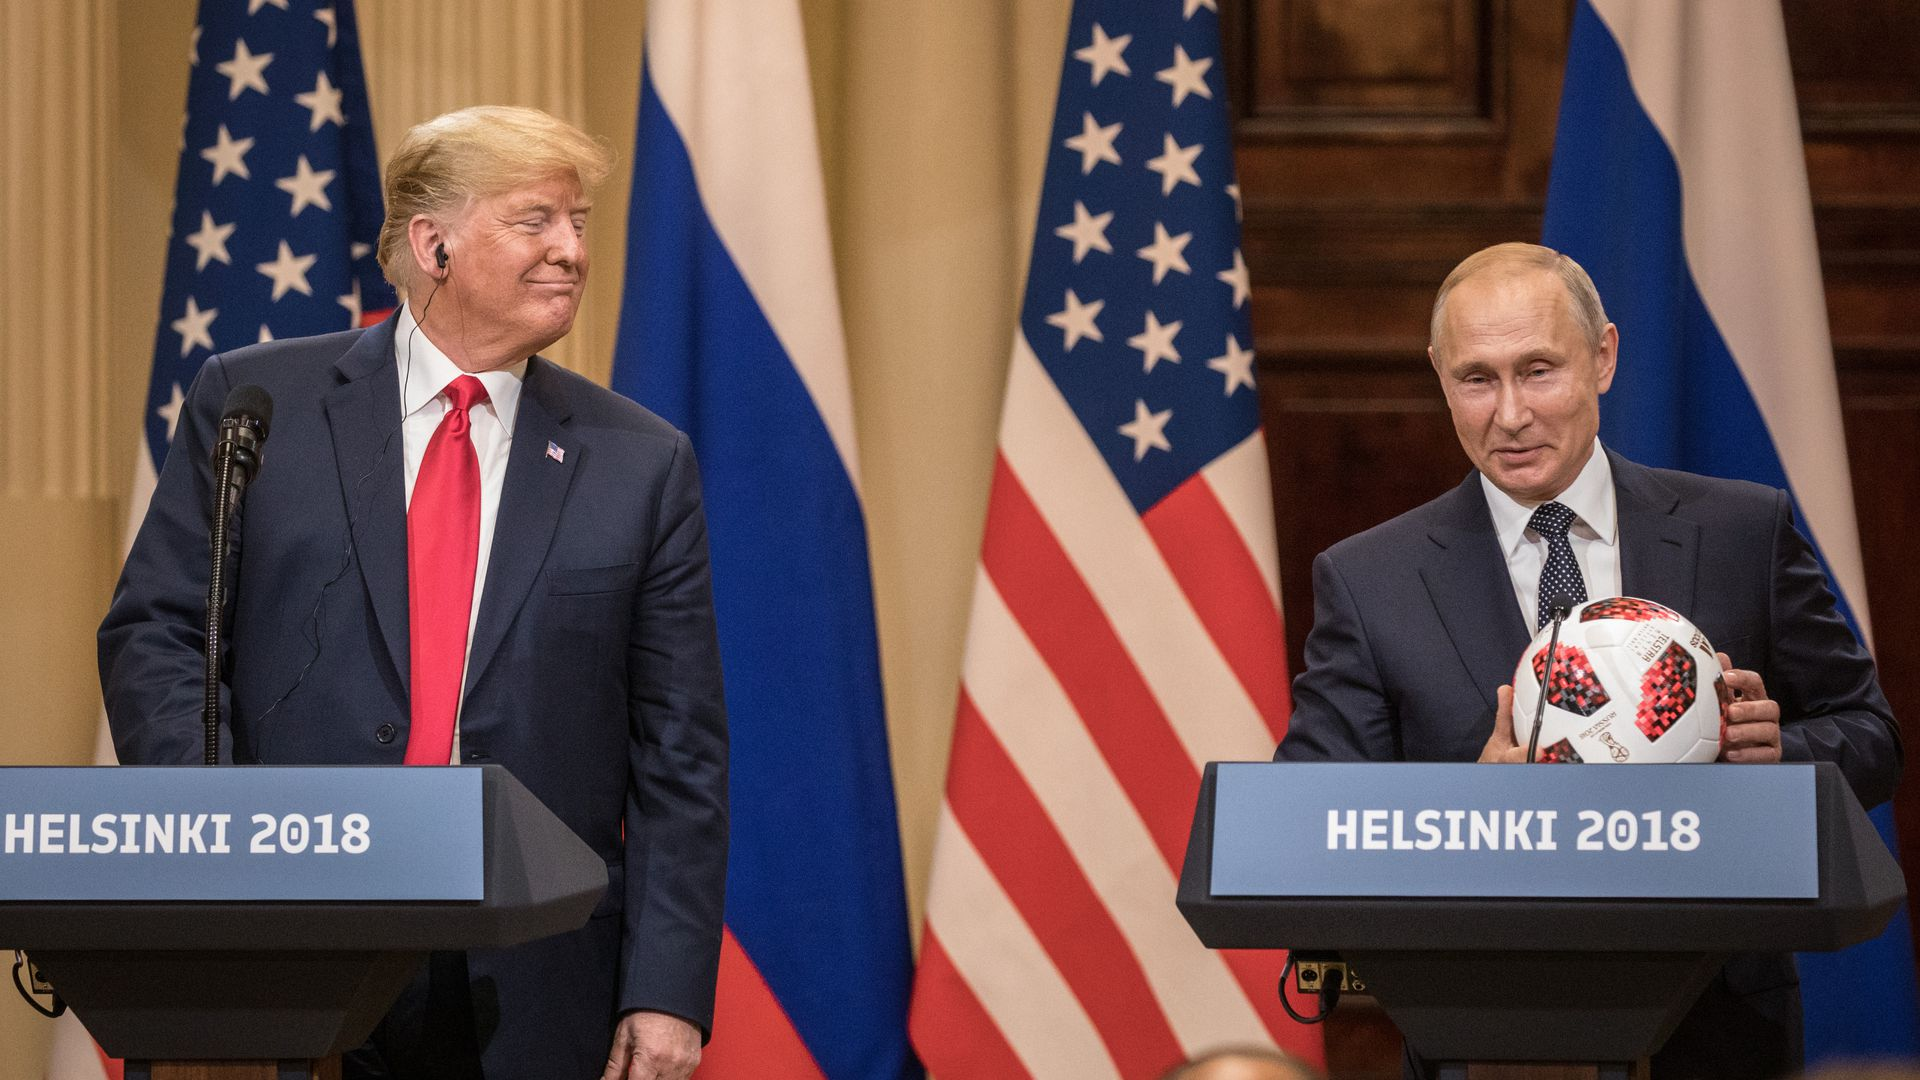 Trump smiles over at Putin, who's holding a soccer ball